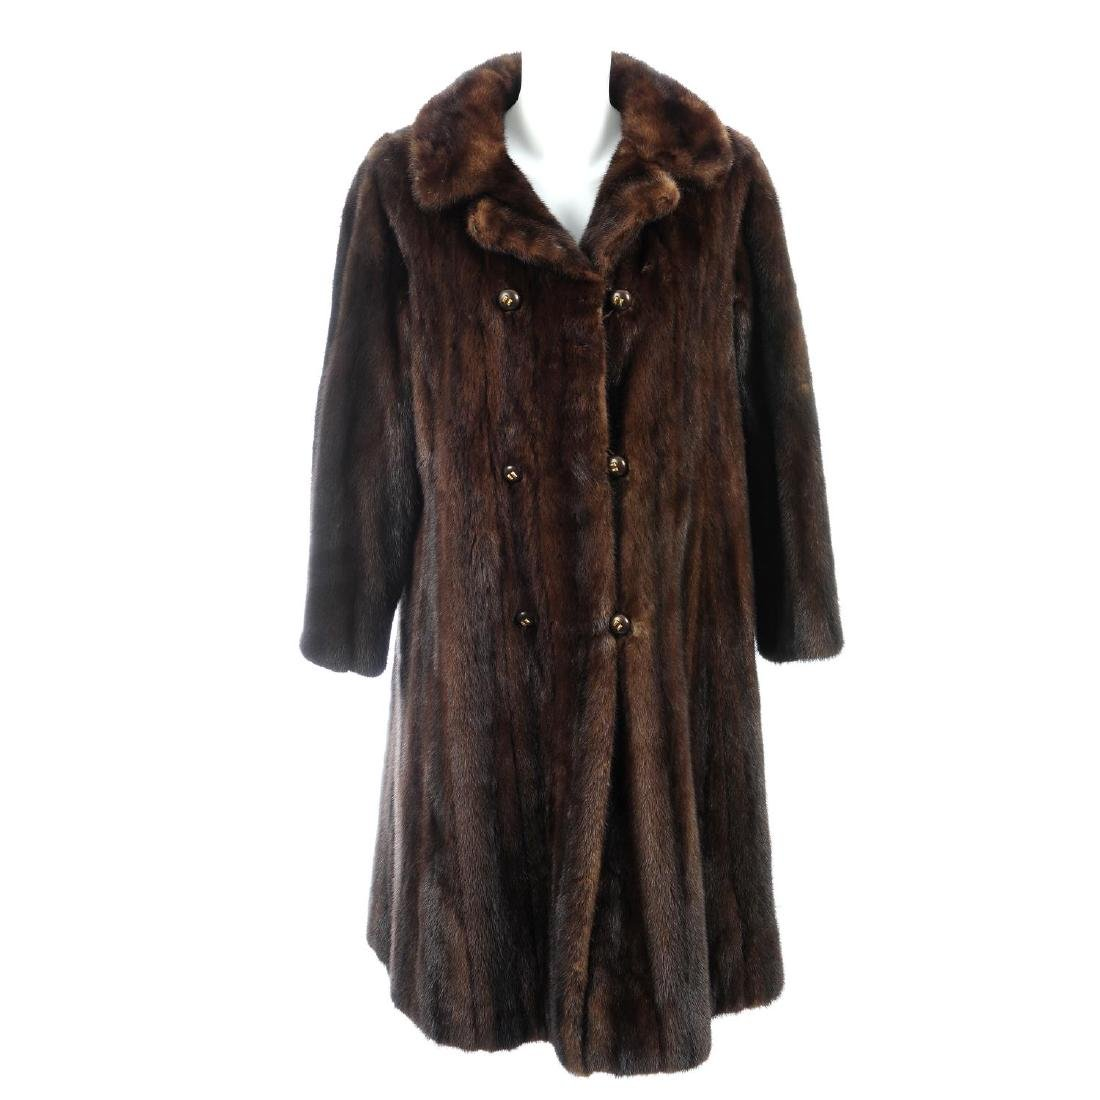 A knee-length ranch mink coat. Featuring a notched